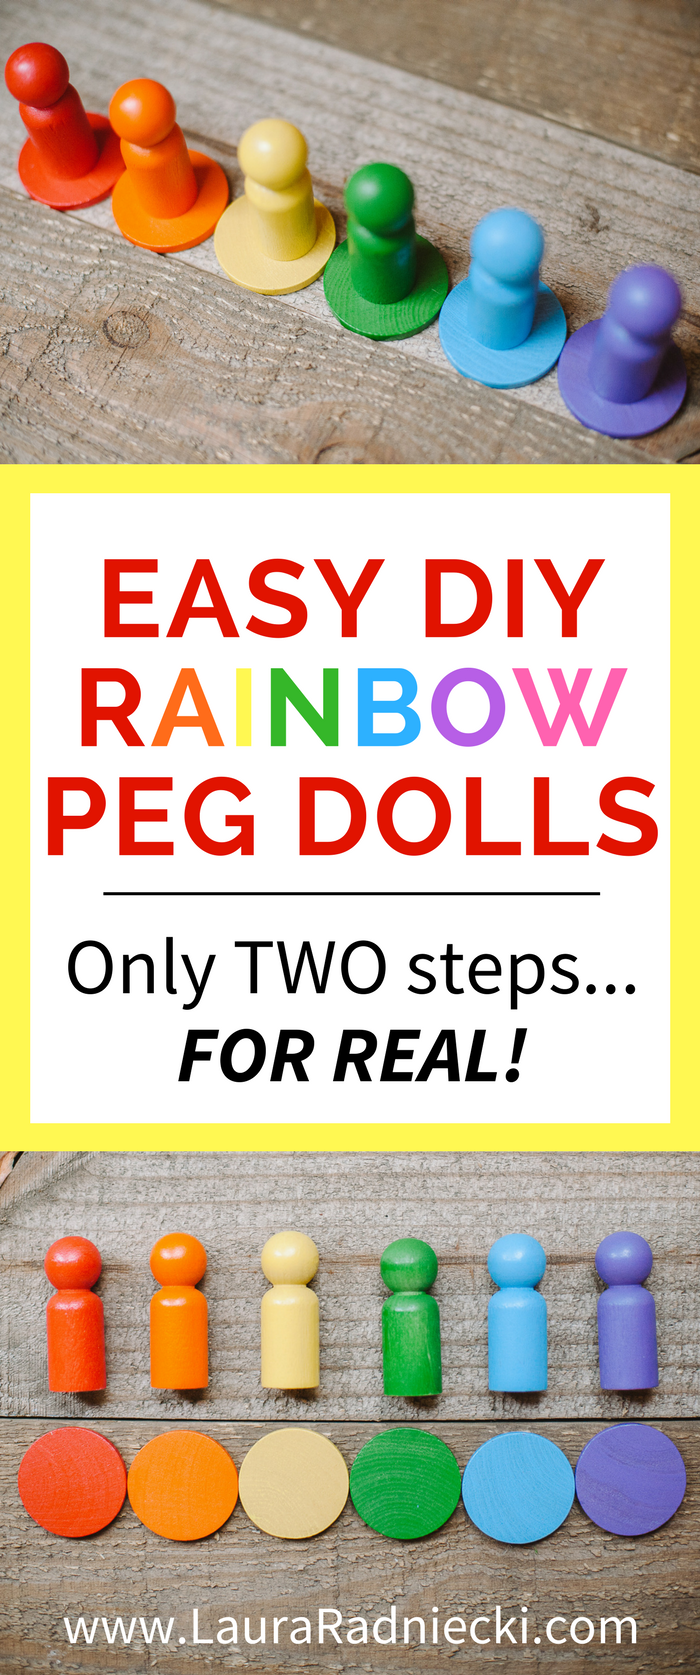 Rainbow Wooden Peg Dolls for Kids - An Easy DIY Tutorial | Kids Crafts, Pegdolls for Kids, Pegdoll Crafts, Wooden Pegdolls, Rainbow Wooden Pegdolls, Rainbow Crafts for Kids, Color Matching Games for Kids #pegdolls #pegdollcrafts #kidscrafts